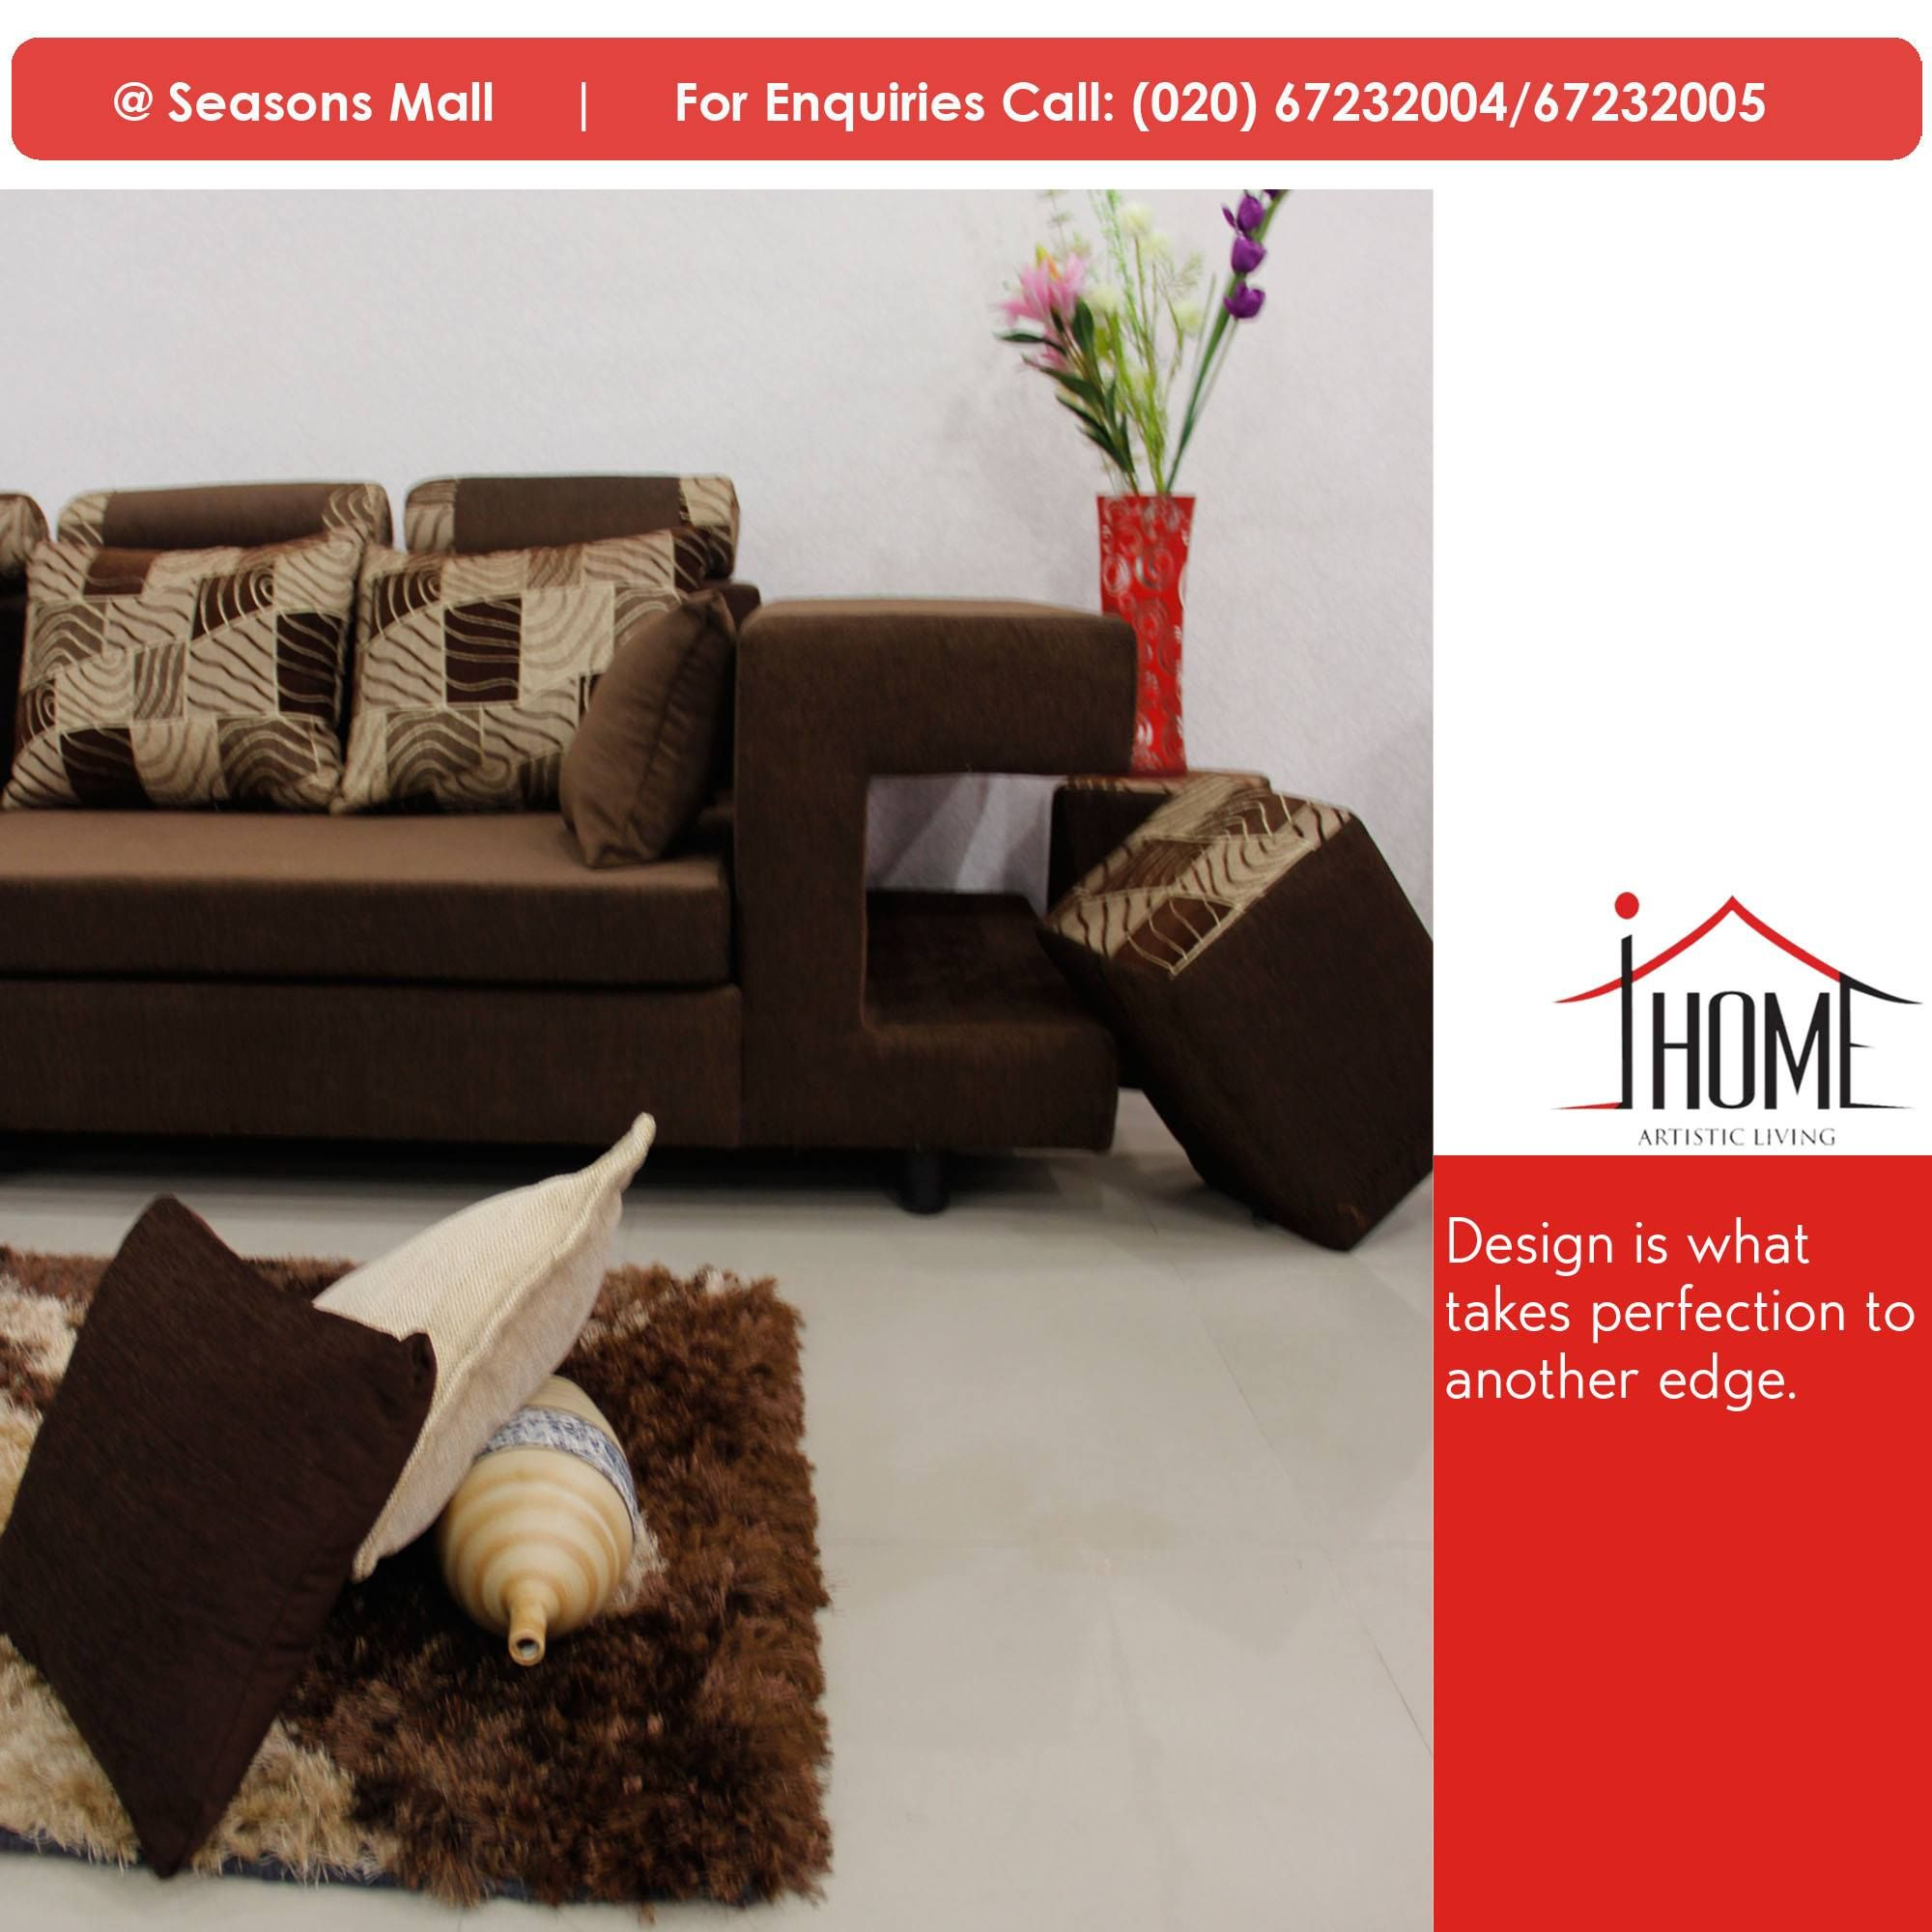 Custom Sofa Makers Ihomefurniture Has Always Something To Add For Comfort Living In An Artistic Way Sectional Sofaset Seasons Mall Pune Maharashtra